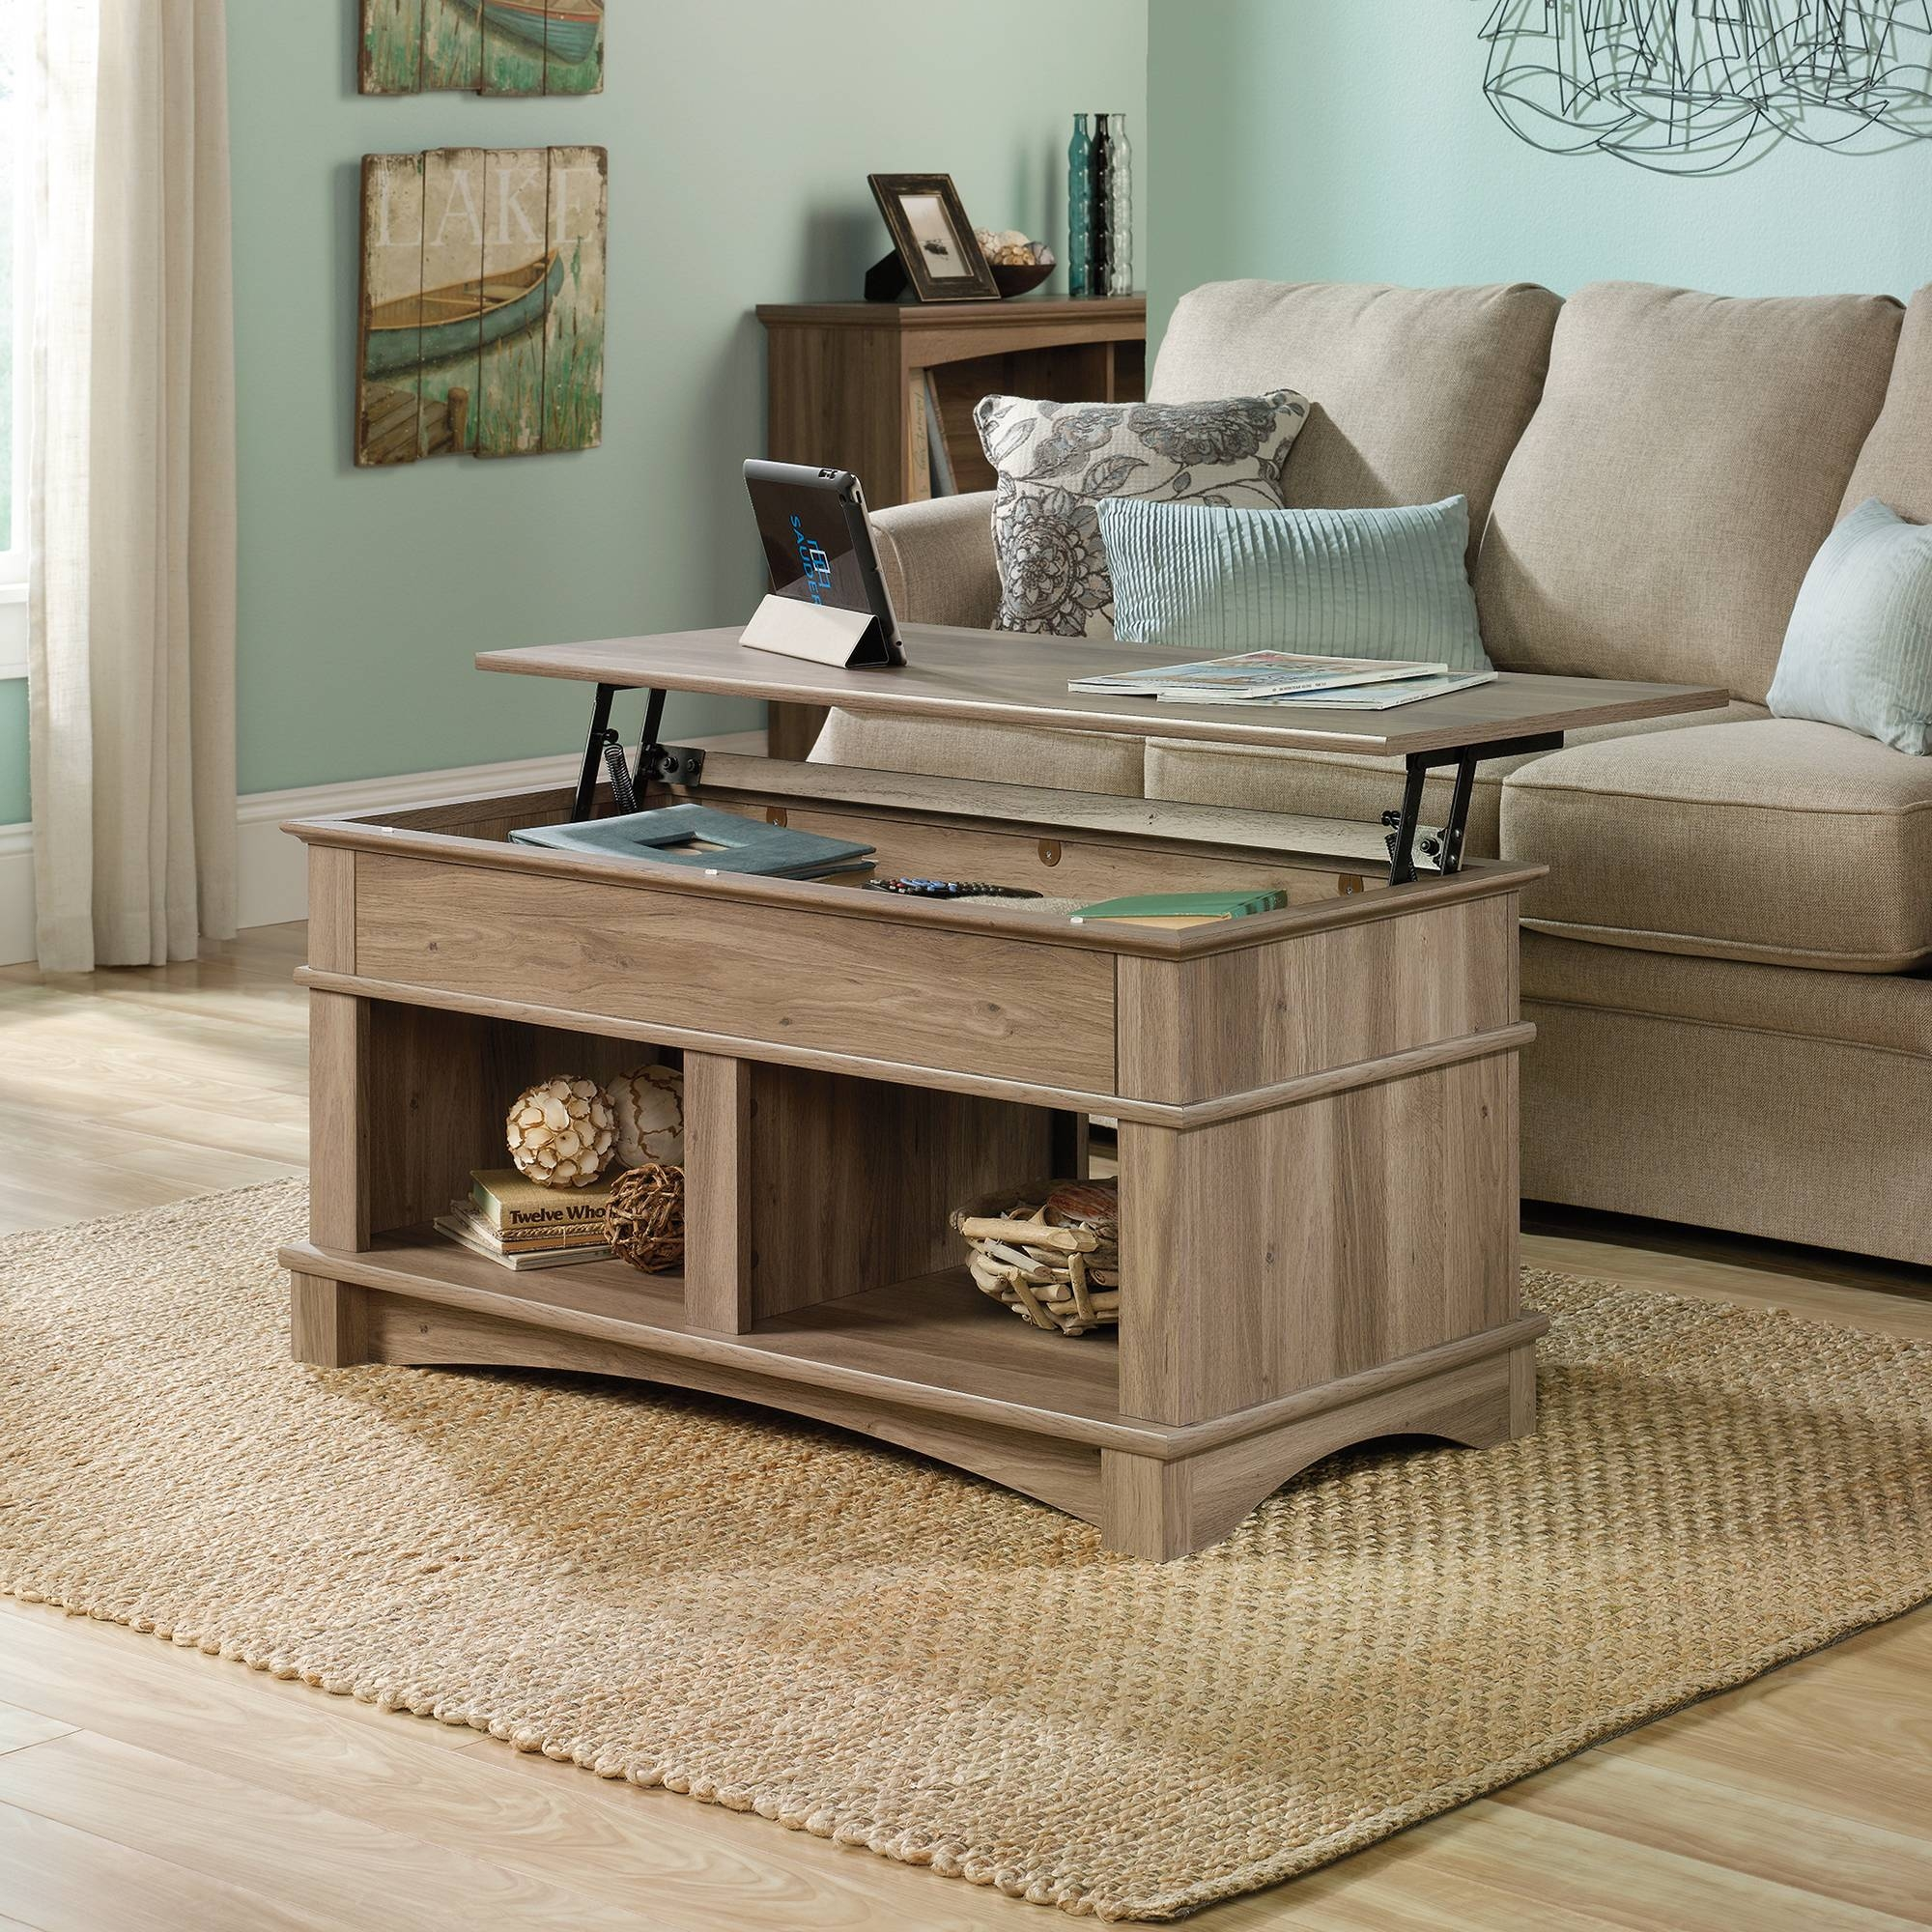 Harbor View | Lift-Top Coffee Table | 420329 | Sauder inside Lift Up Top Coffee Tables (Image 15 of 30)